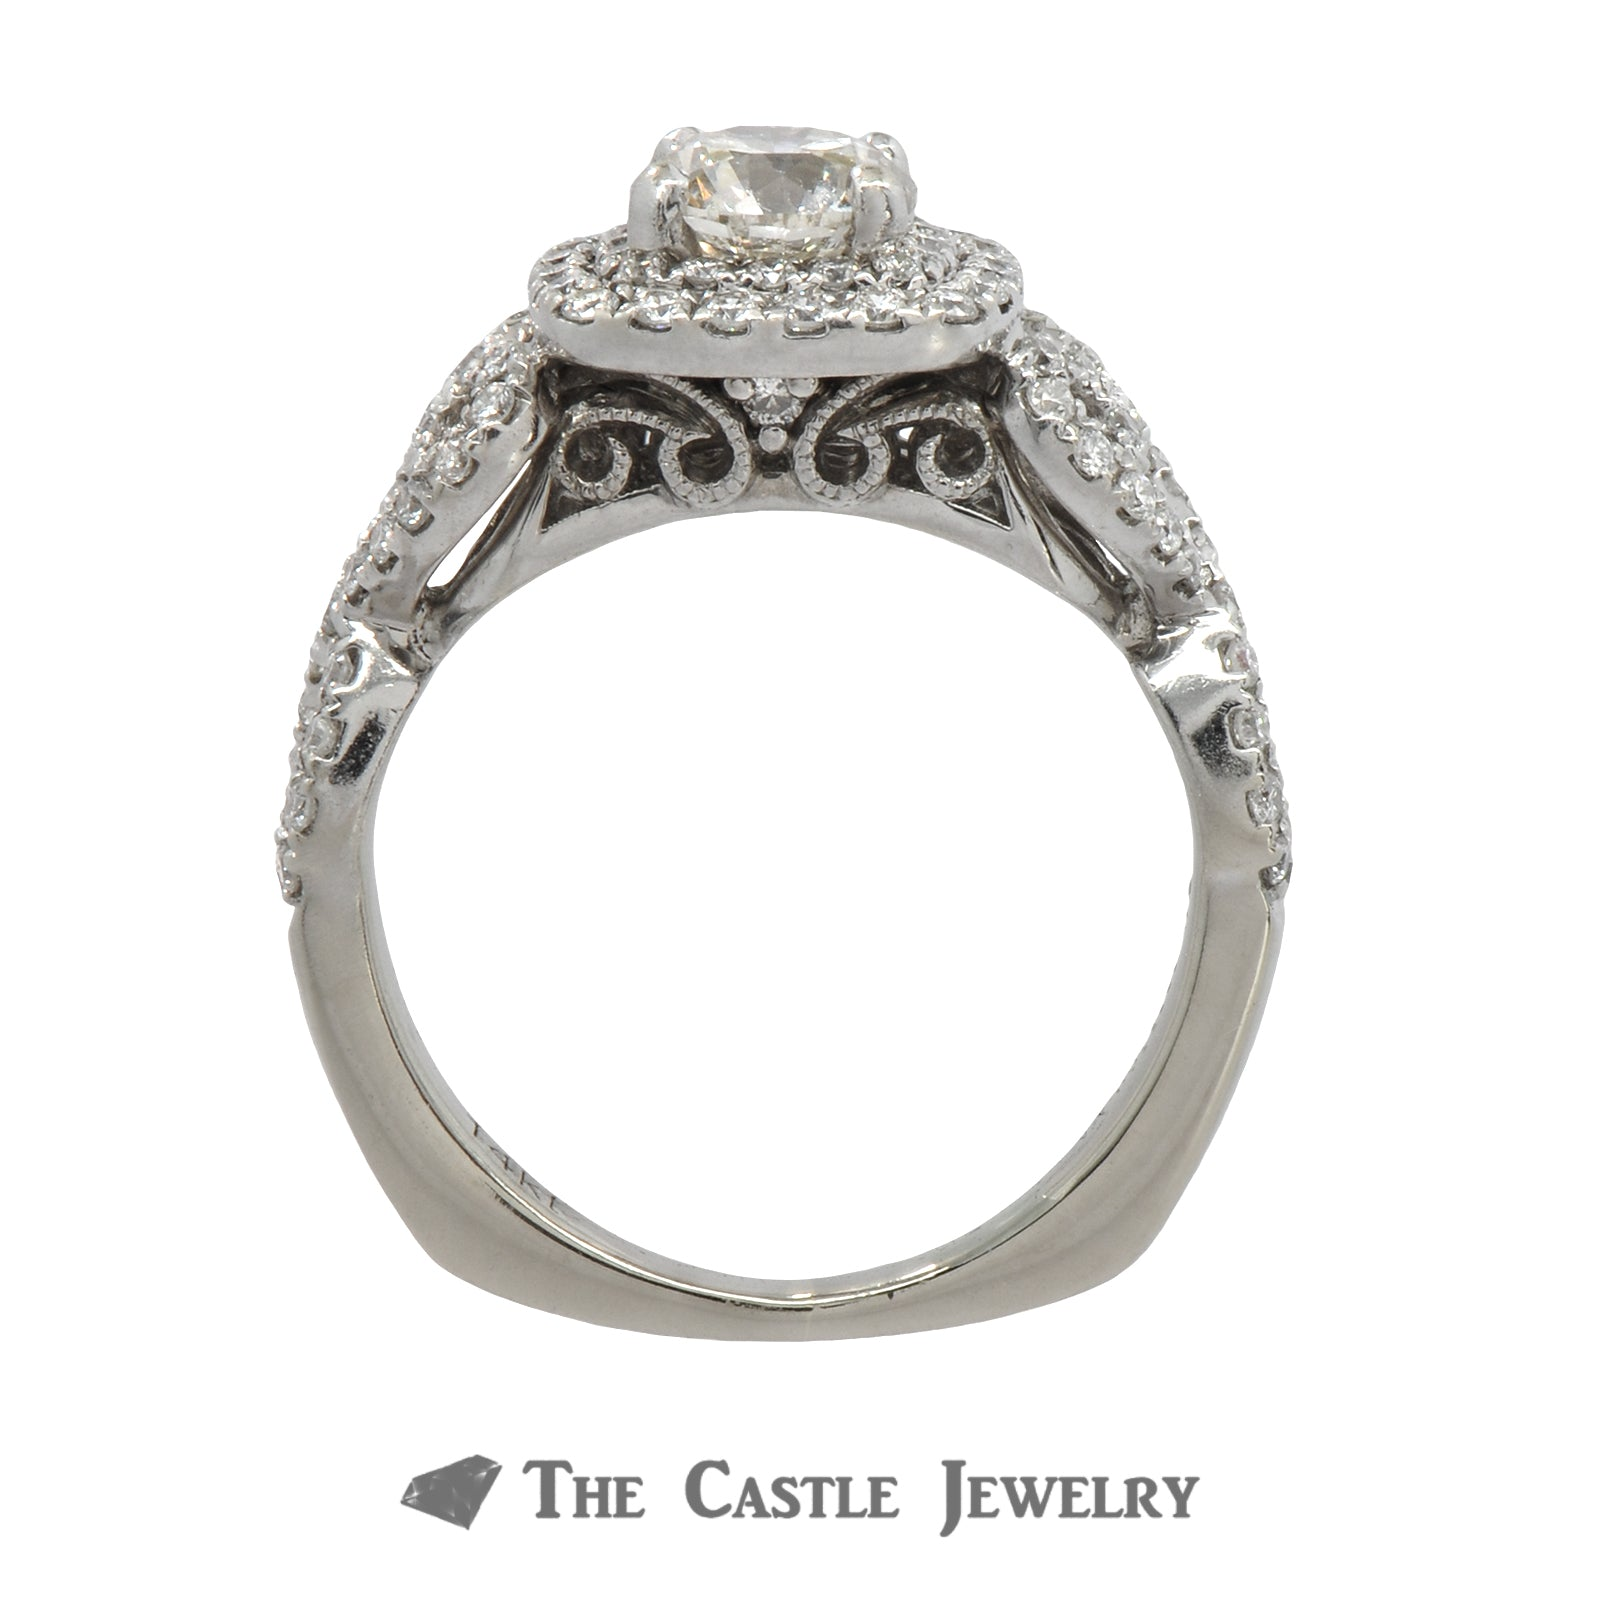 Diamond Engagement Ring With 1cttw Diamond Halo & Accents In 14k White Gold-1